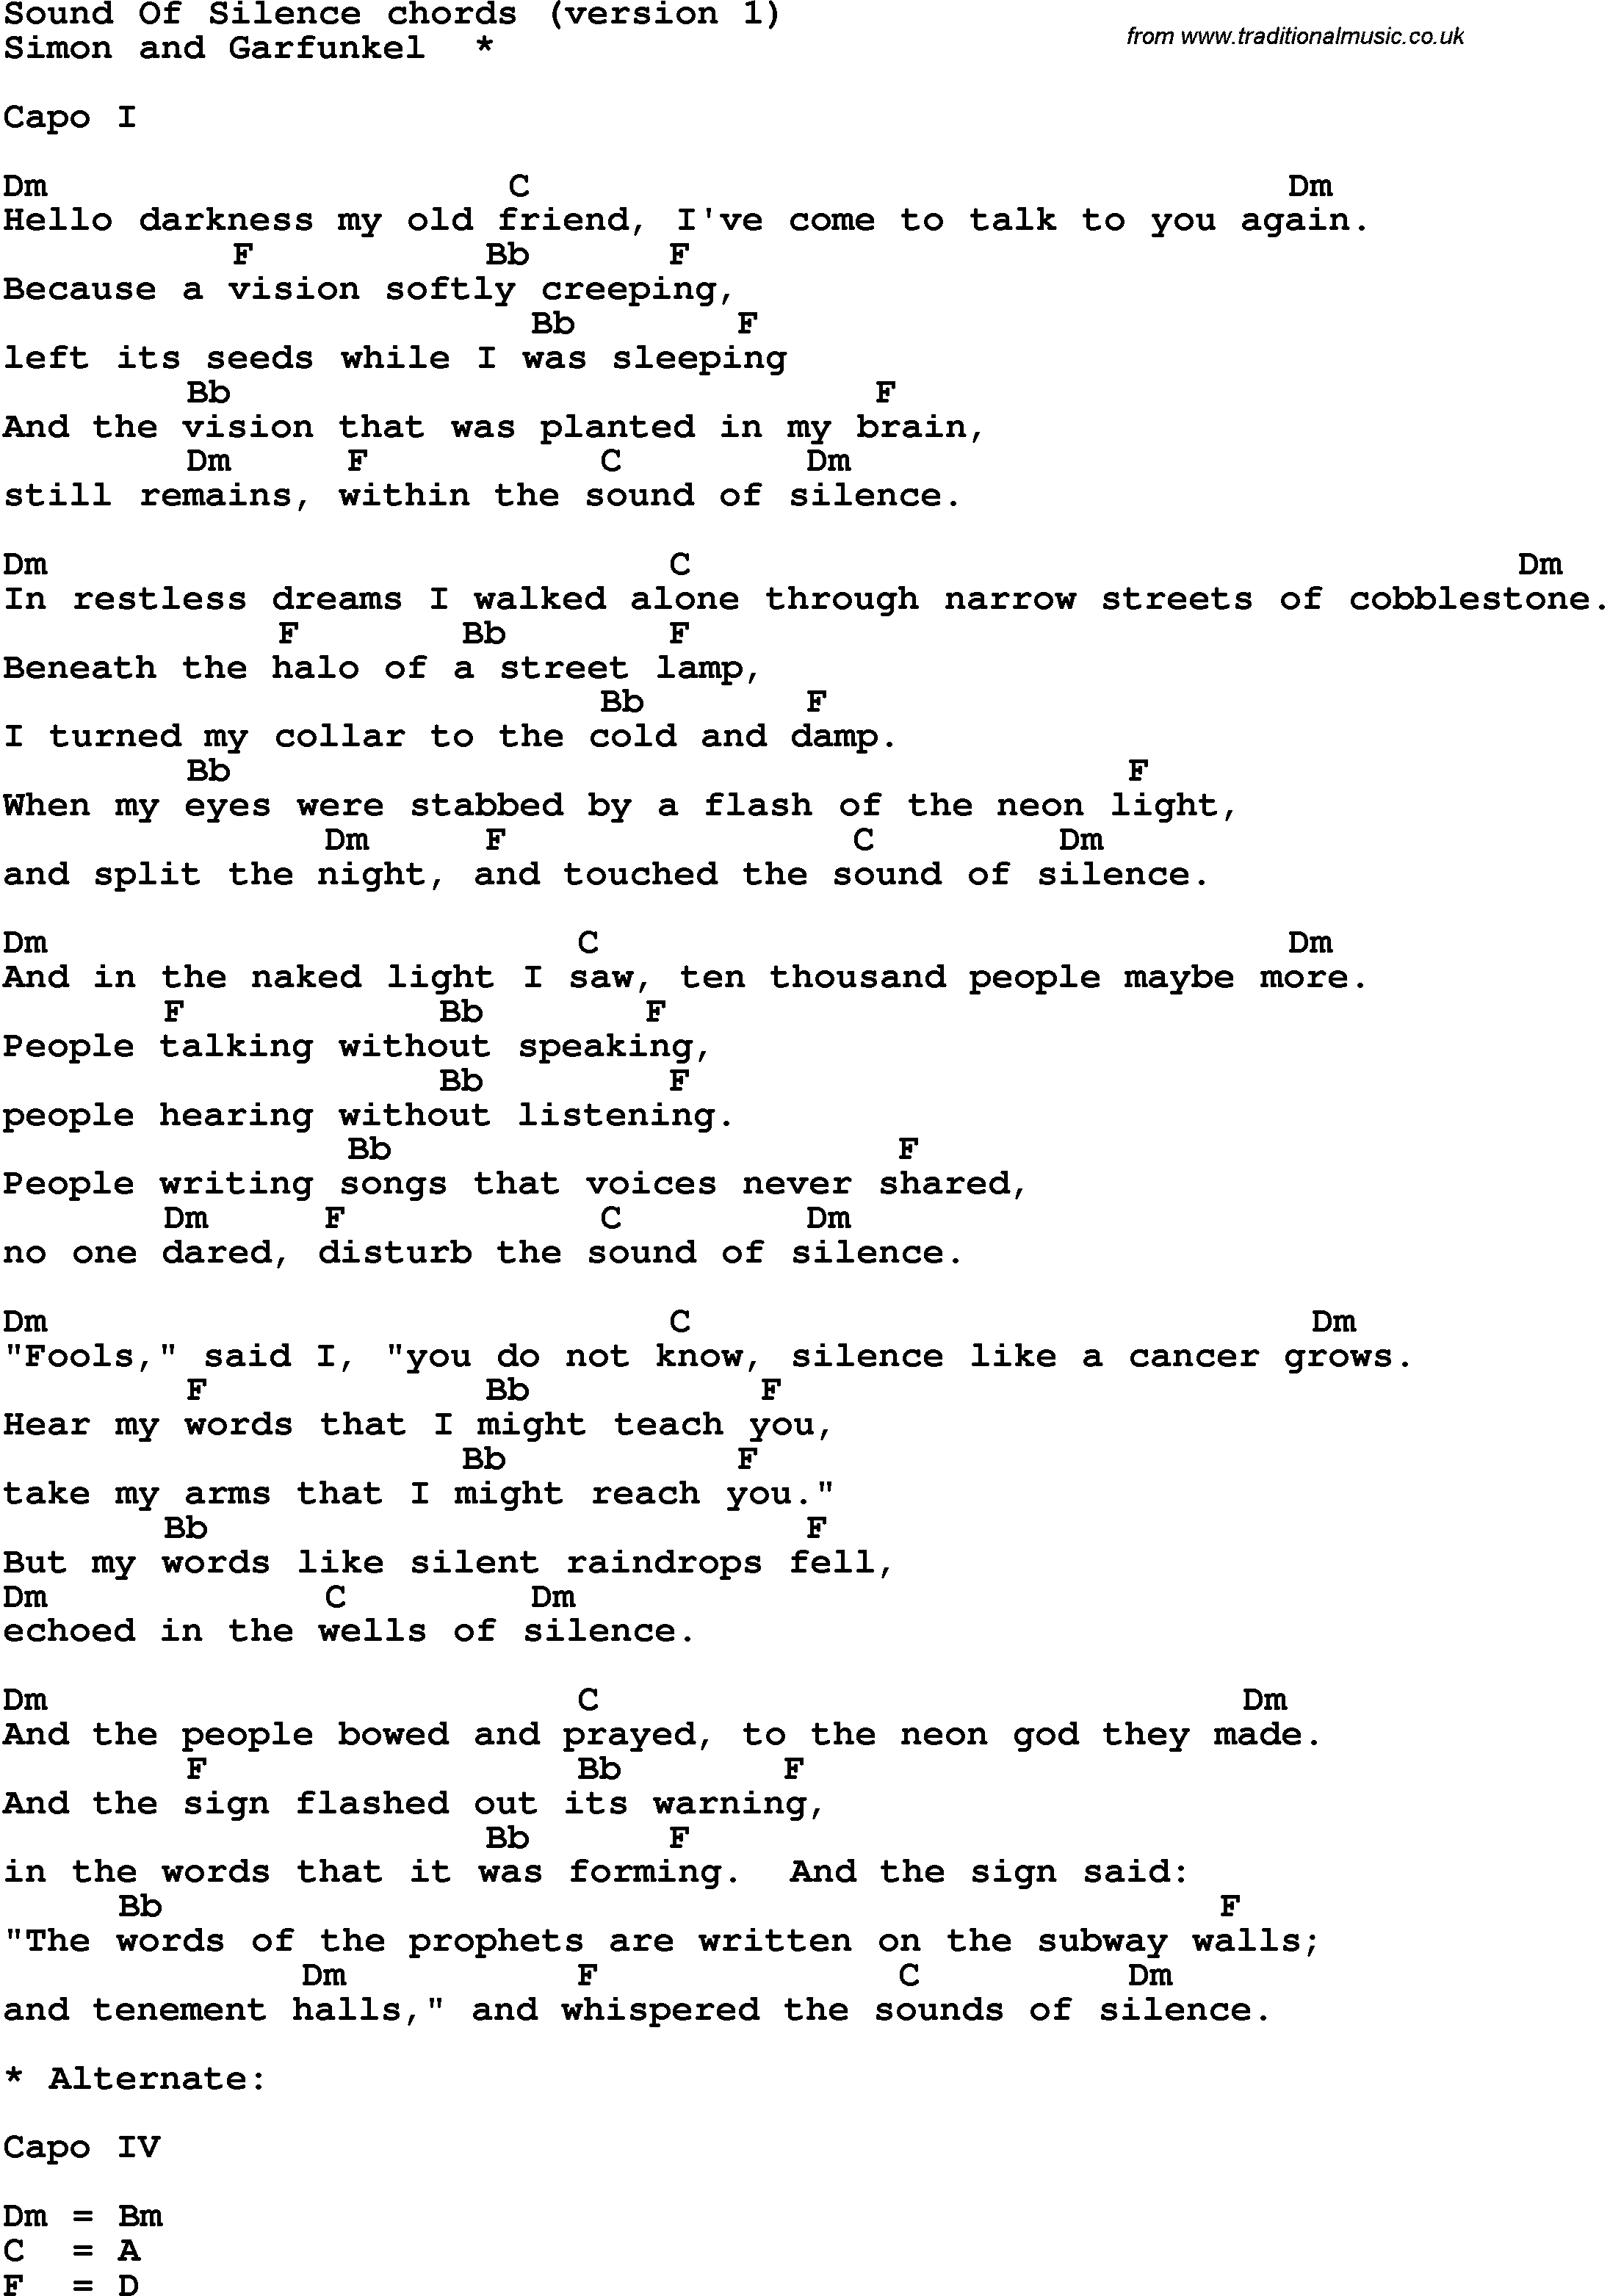 Song Lyrics With Guitar Chords For Sound Of Silence Guitar Playing